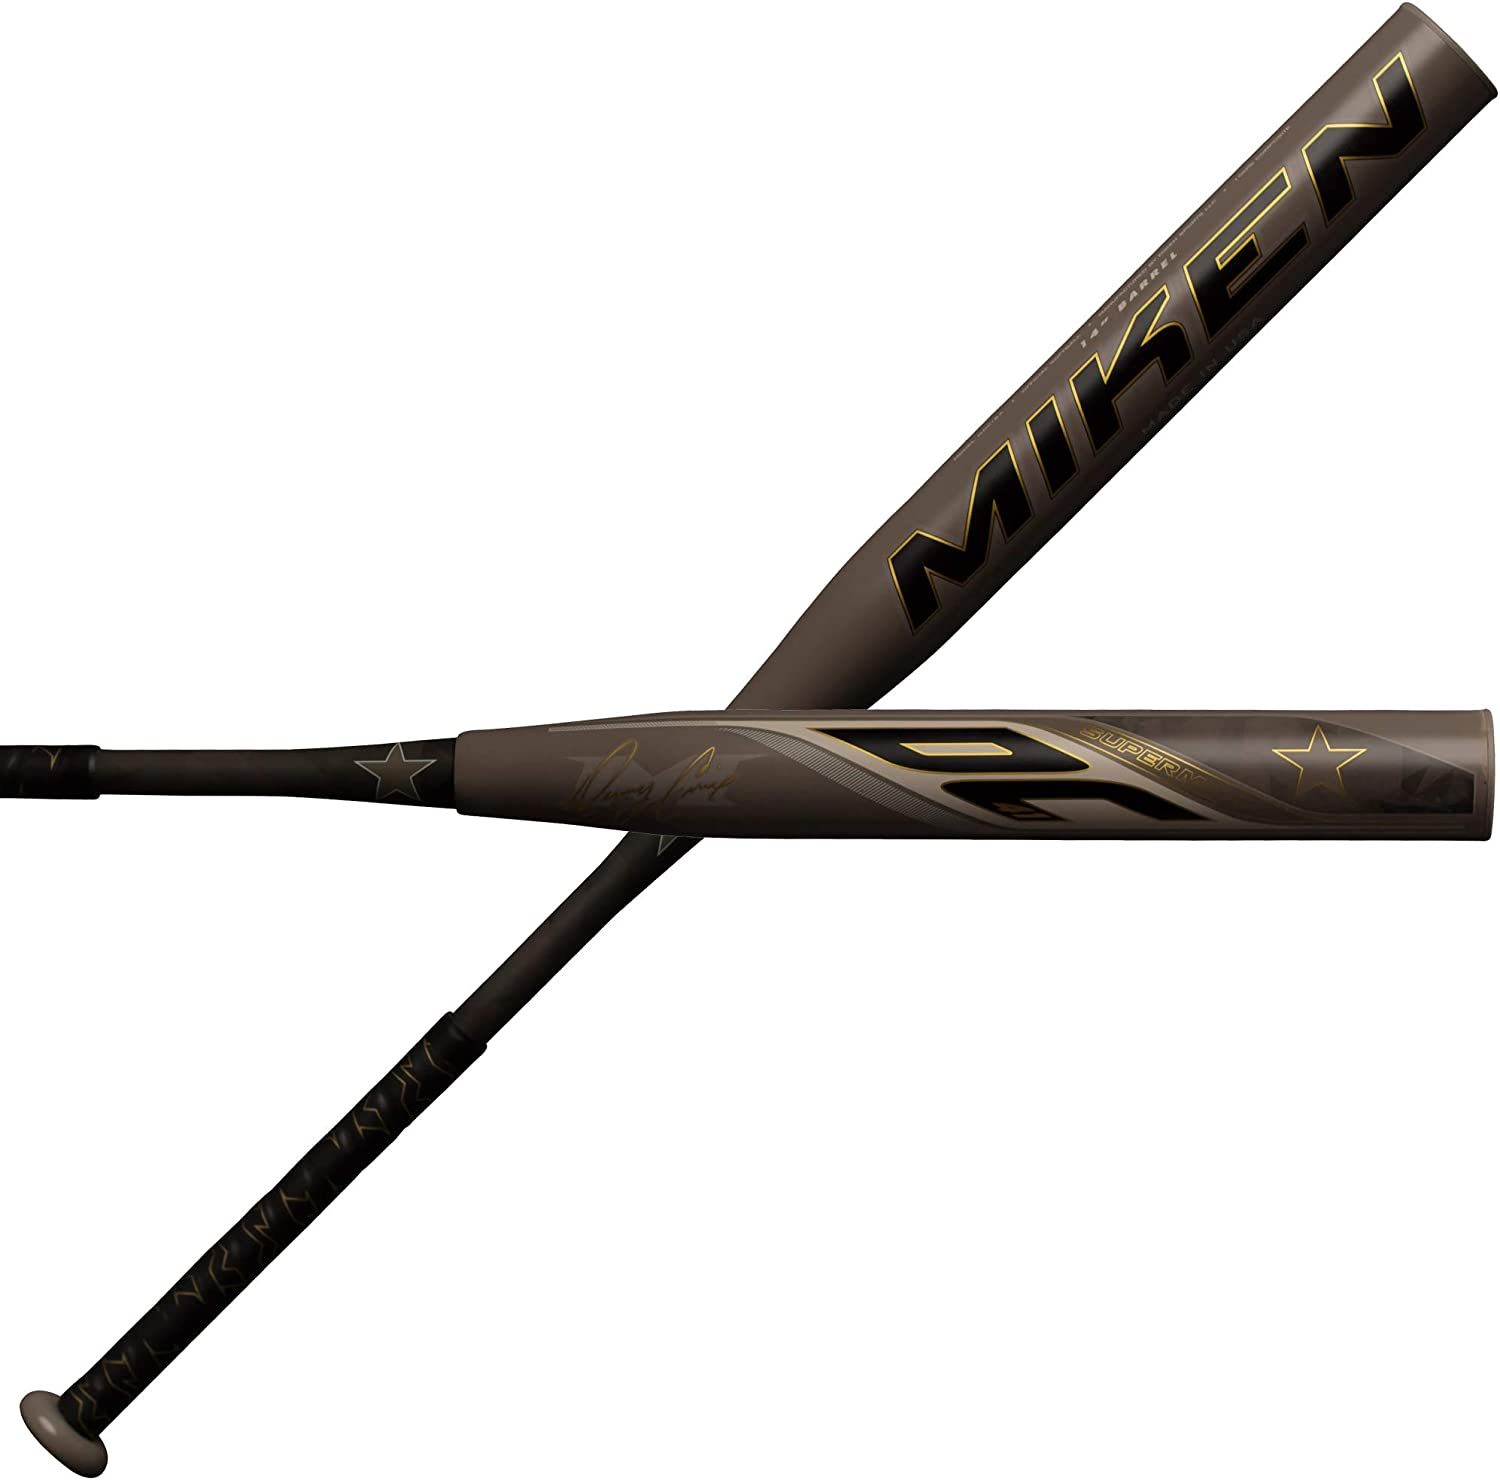 Miken DC-41 Softball Bat